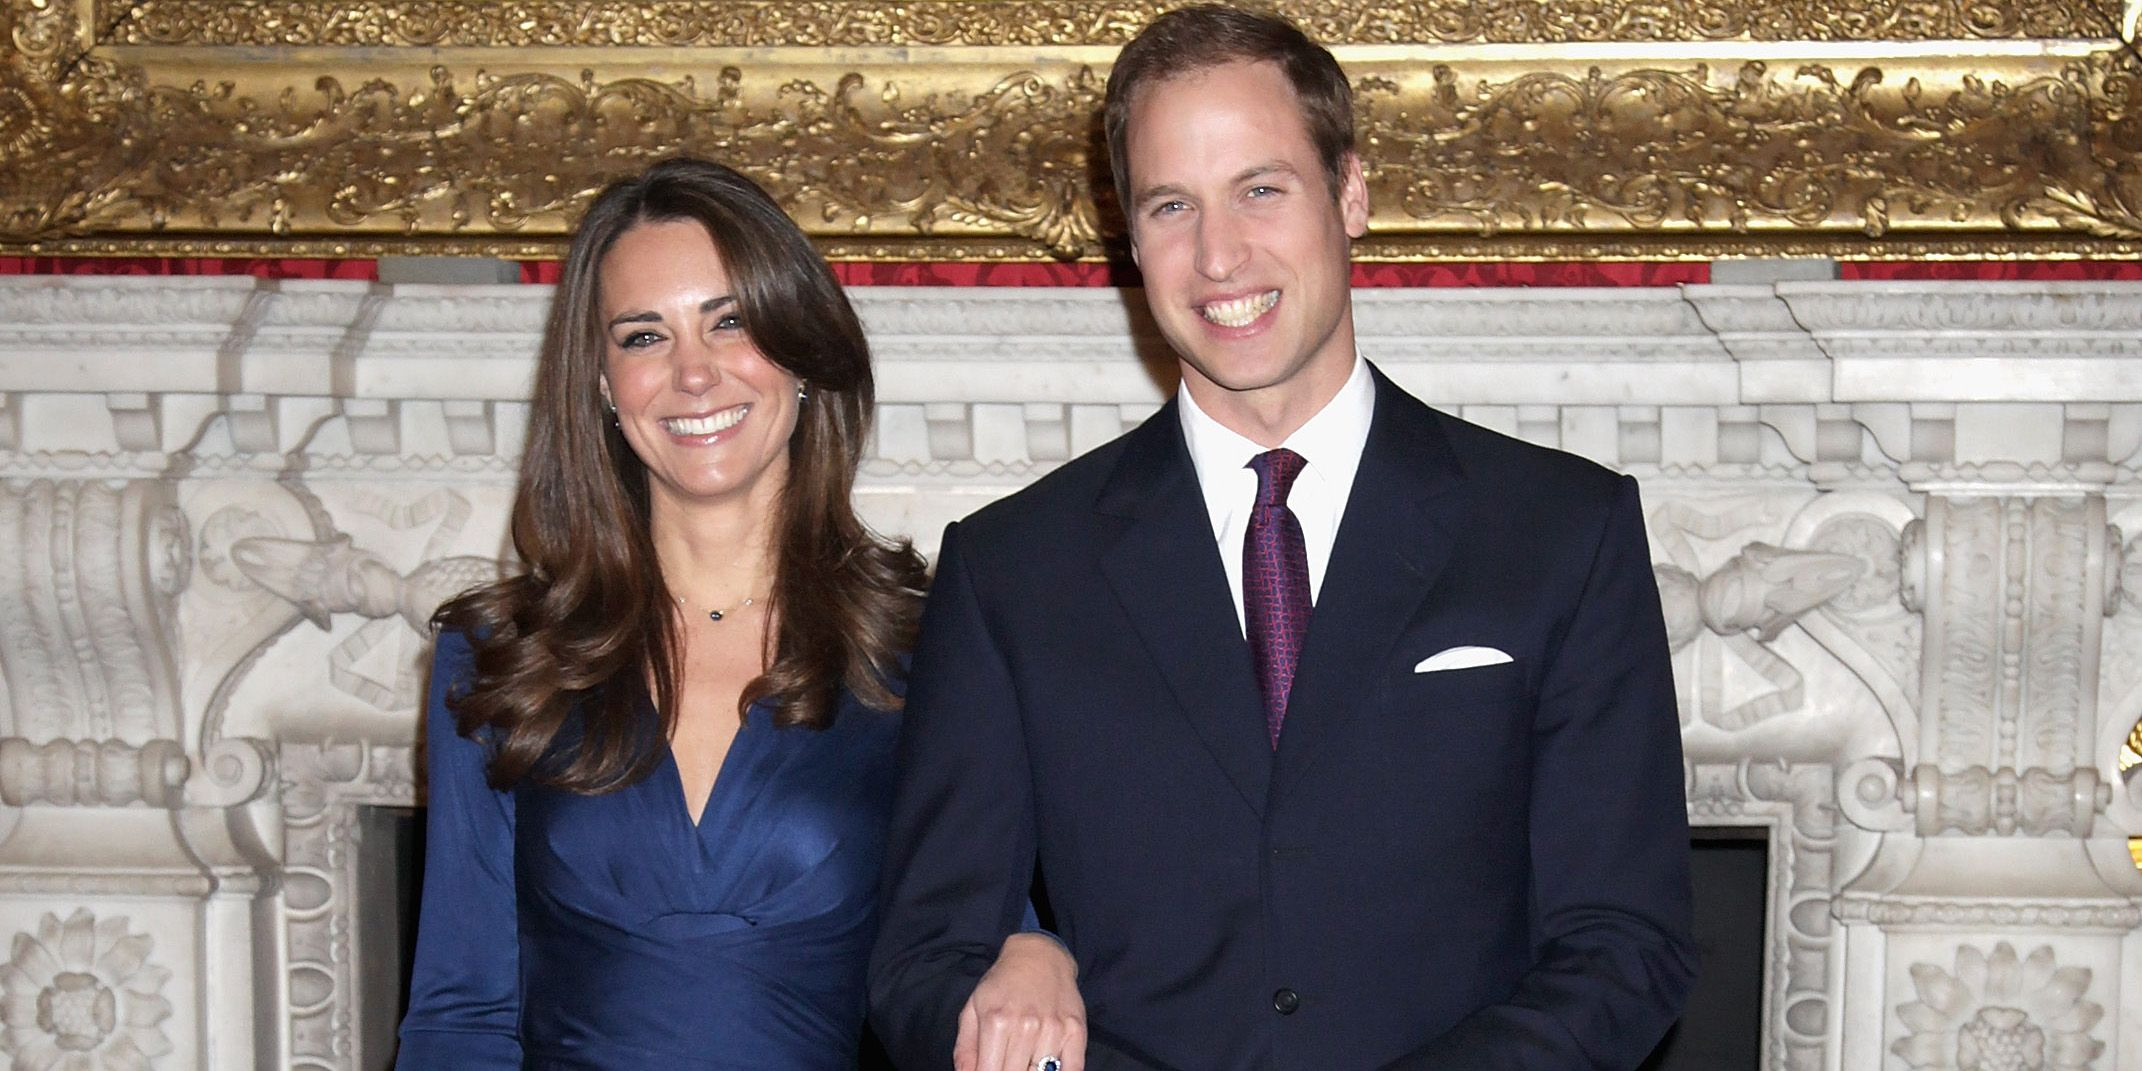 Kate Middletons Iconic Engagement Dress Is Now Super Affordable picture